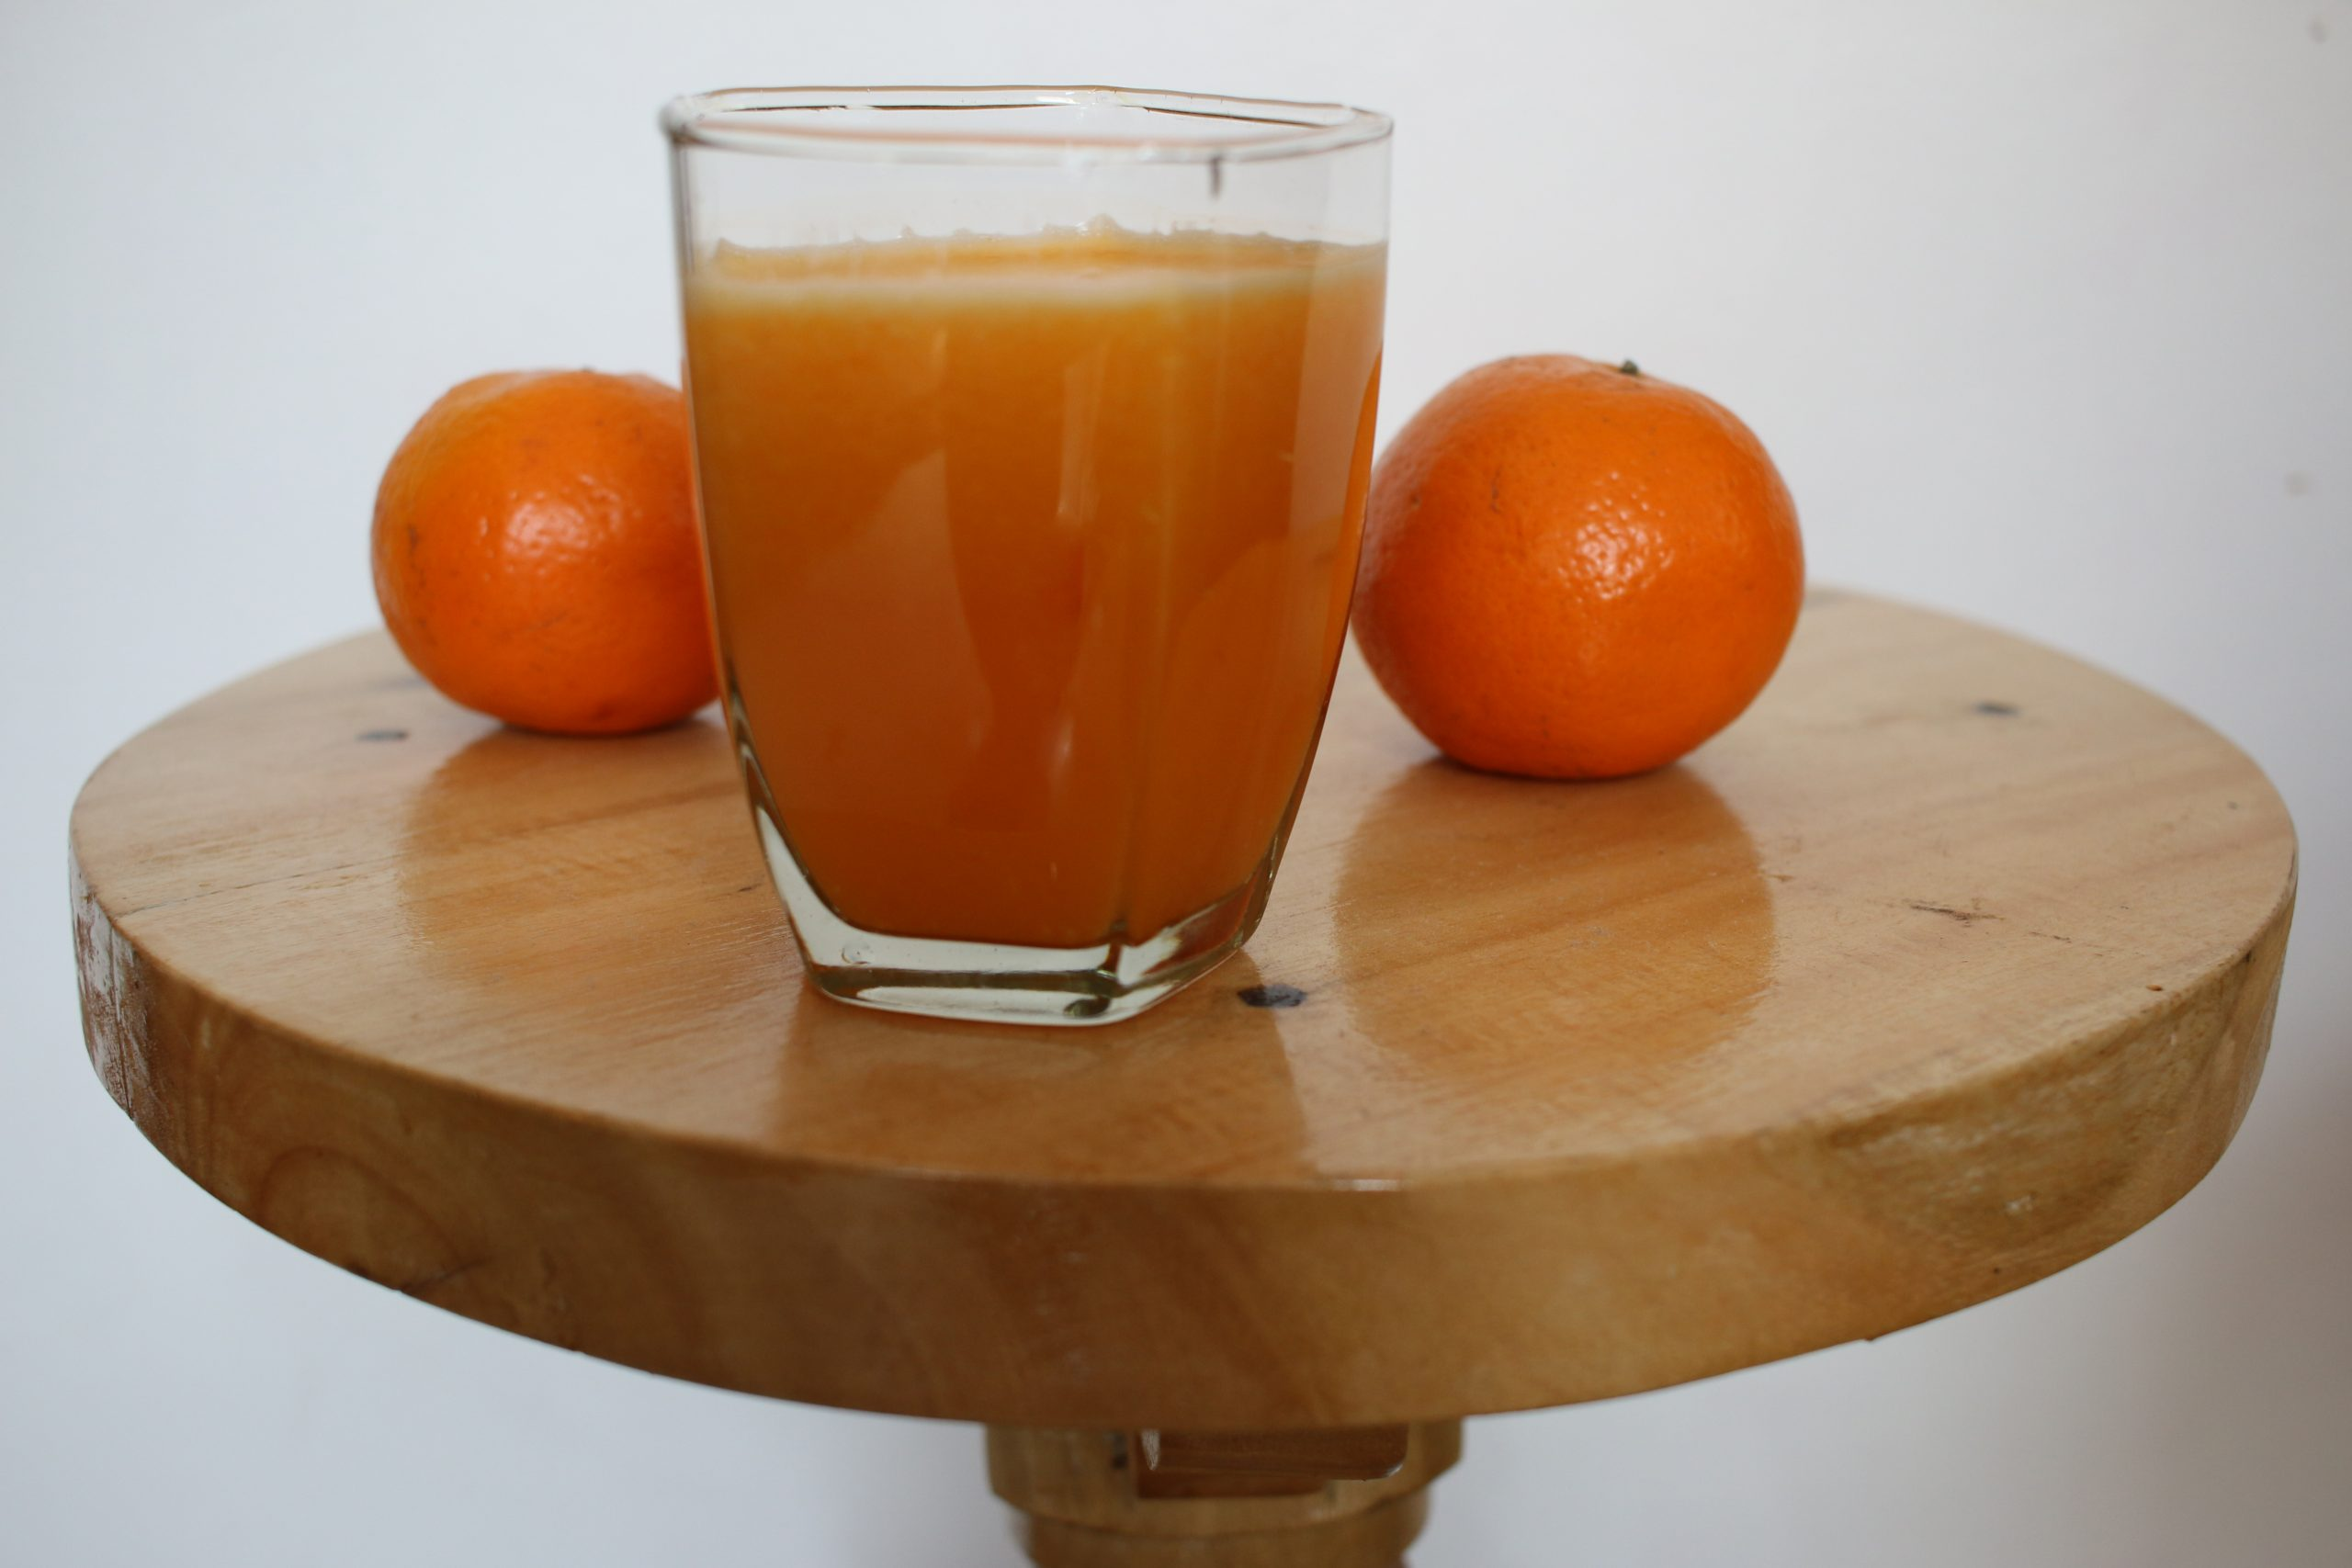 An orange juice glass